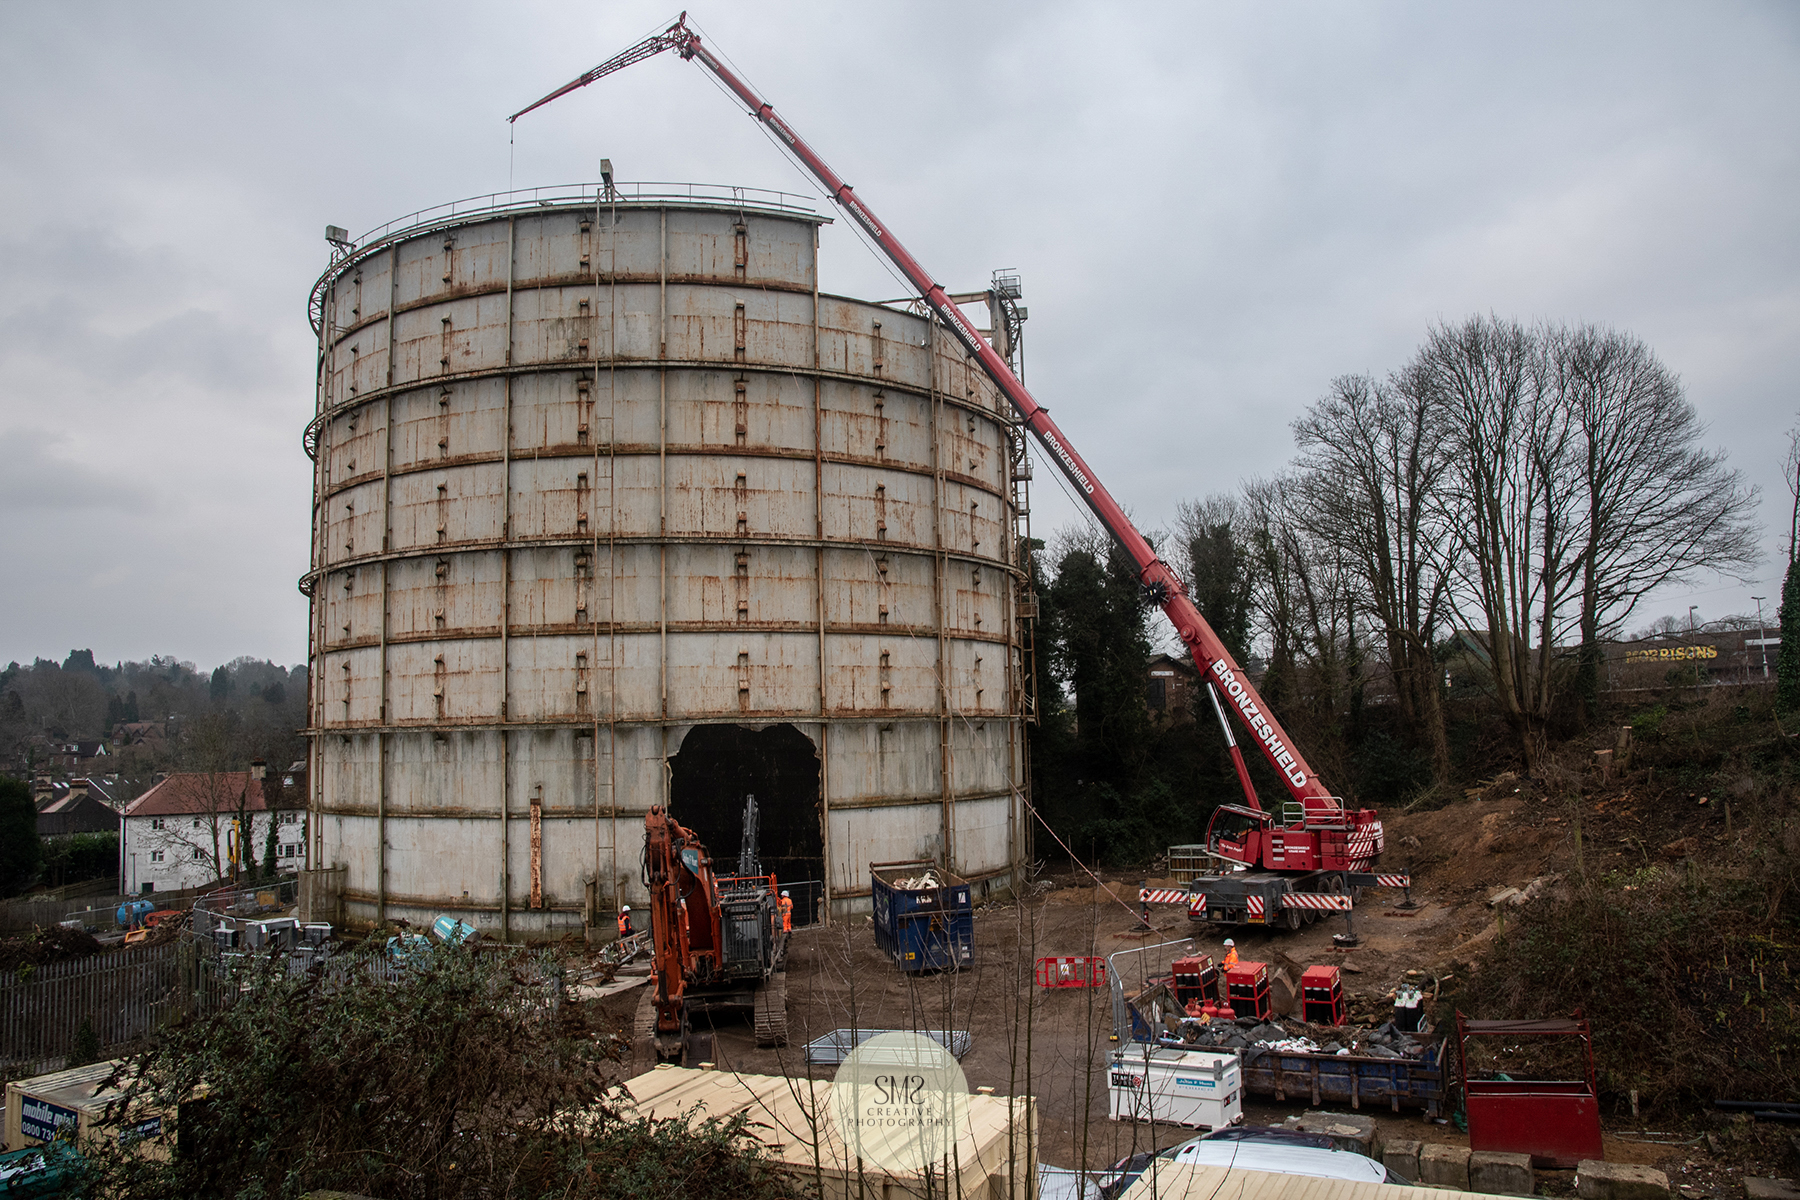 A piece from the side of the gas holder removed so the crane has access to the furthest part of the roof to complete the top removal